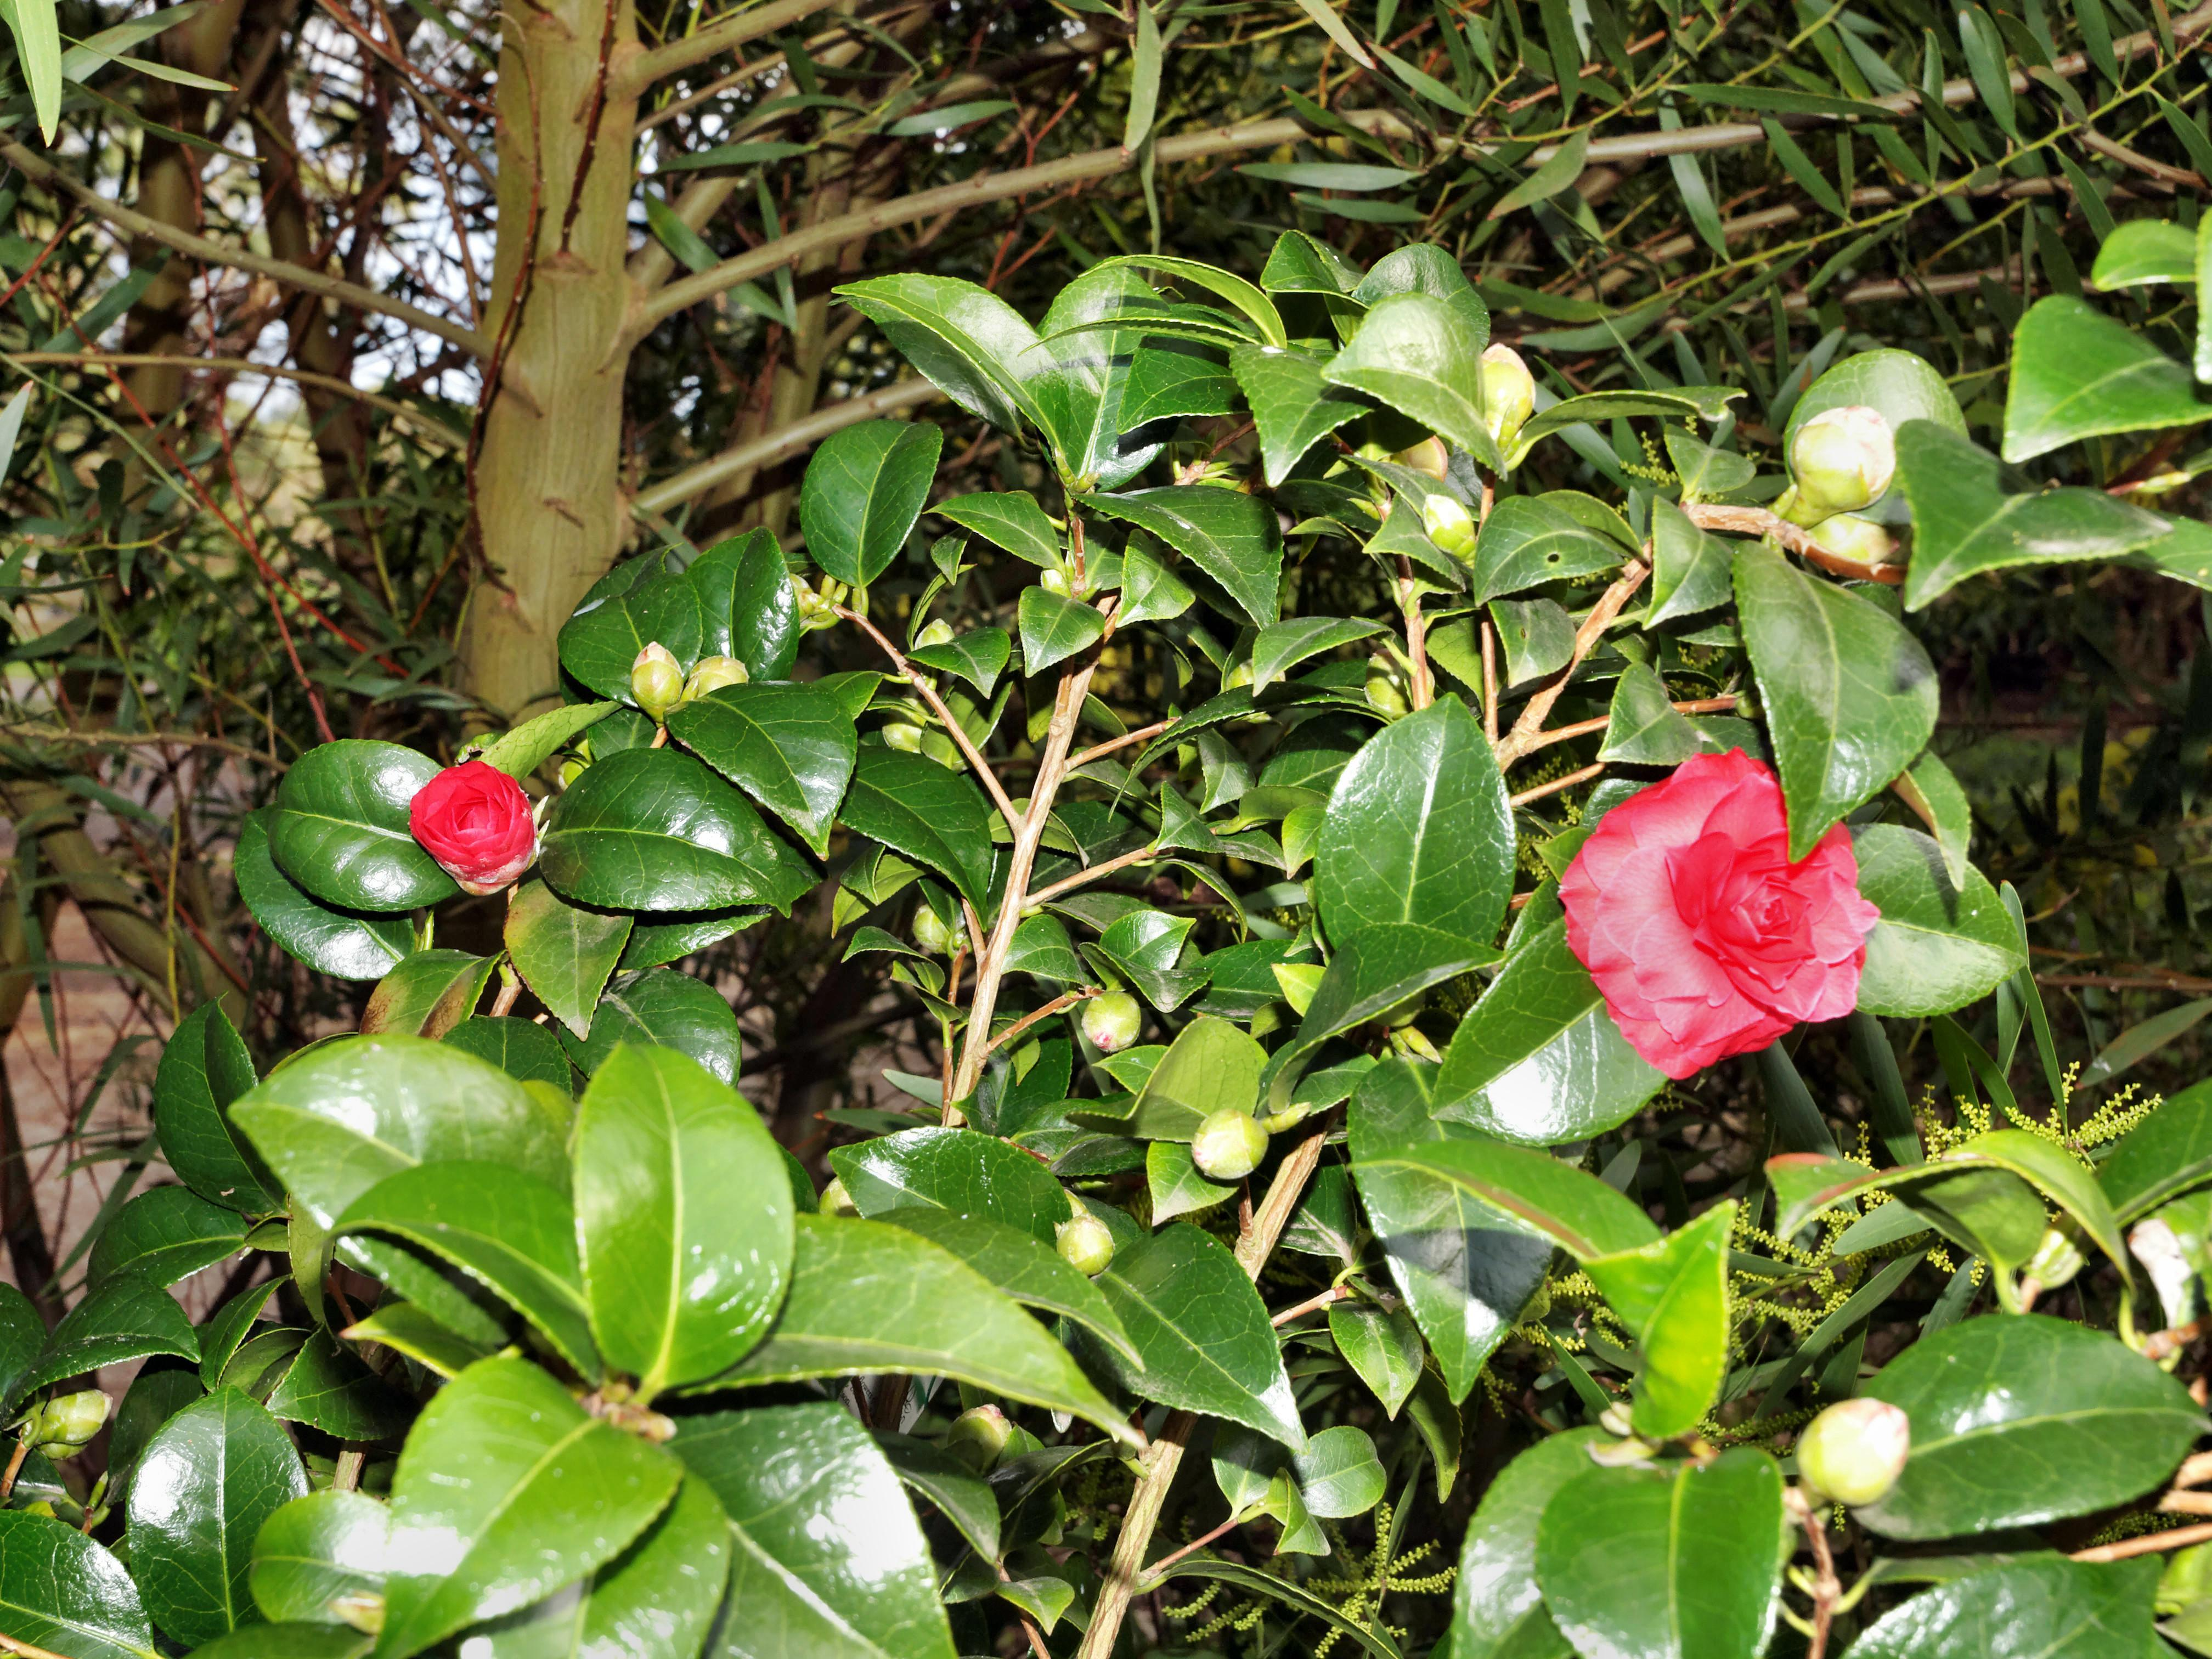 This should be Camellia-2.jpeg.  Is it missing?